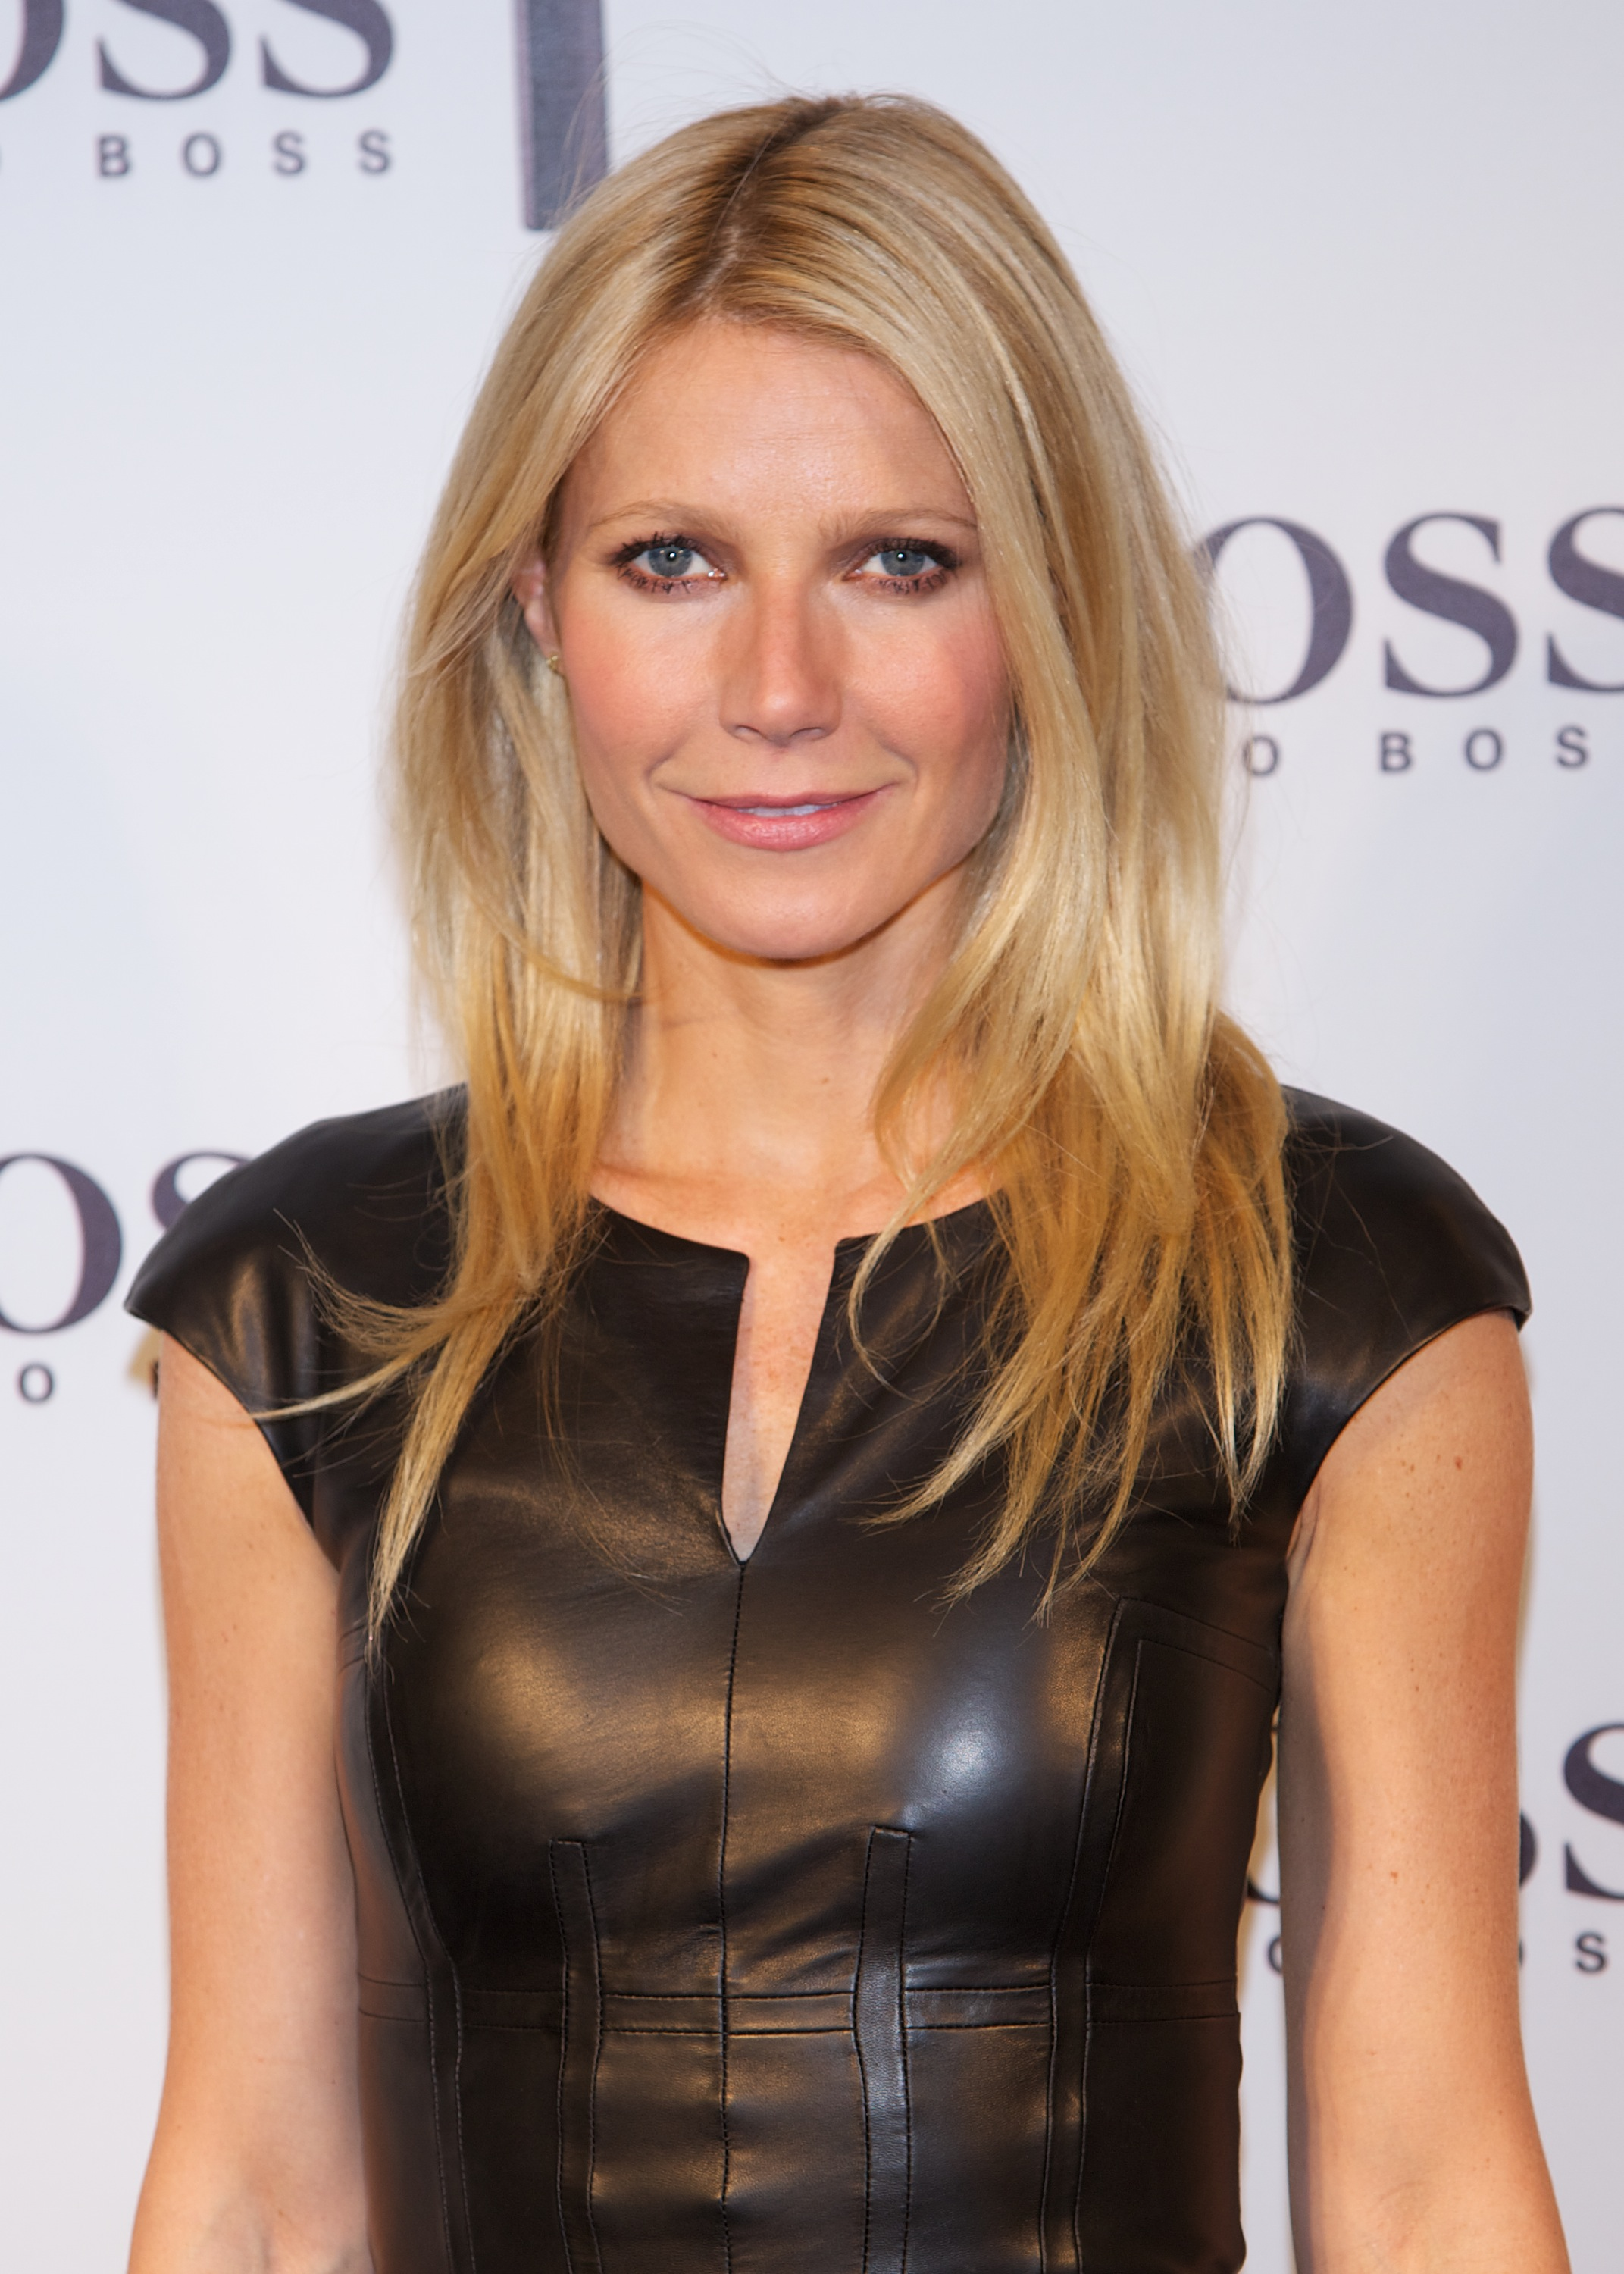 Gwyneth Paltrow Hot Topless Images, Sexy Bikini Pictures-6005